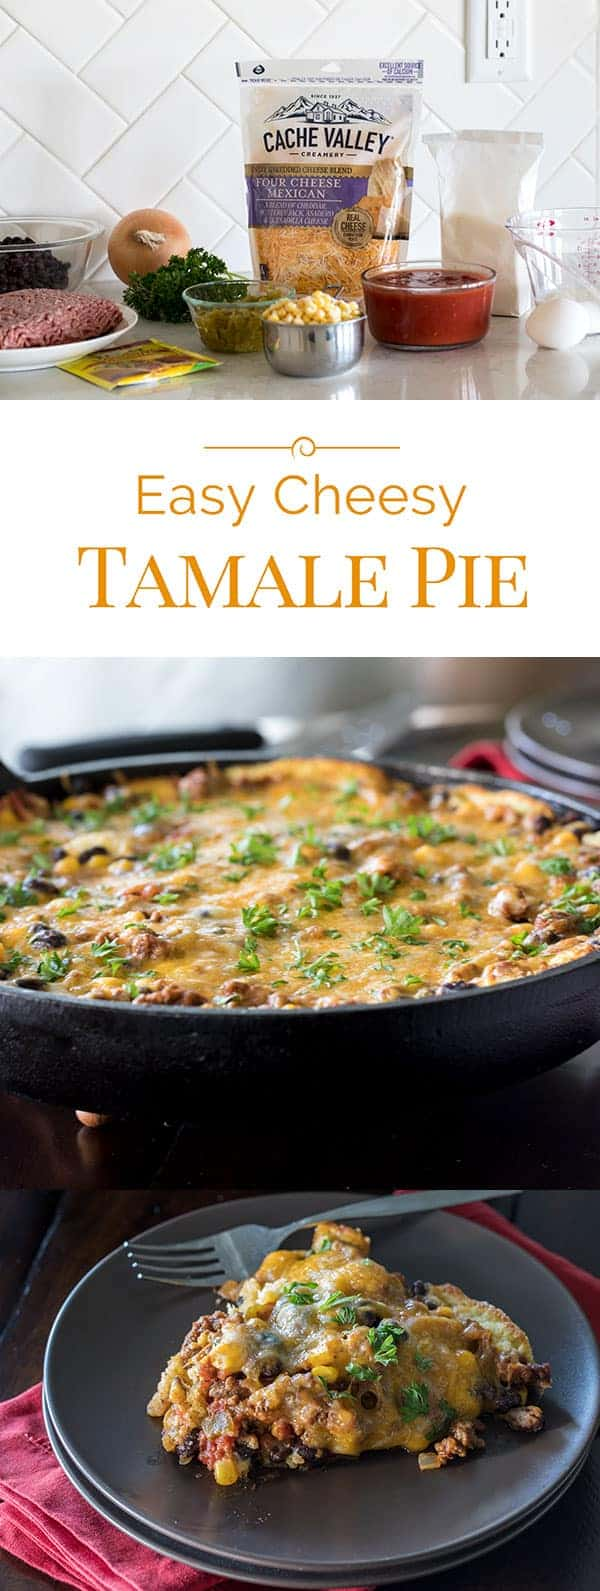 titled photo collage (and shown): Easy Cheesy Tamale Pie recipe